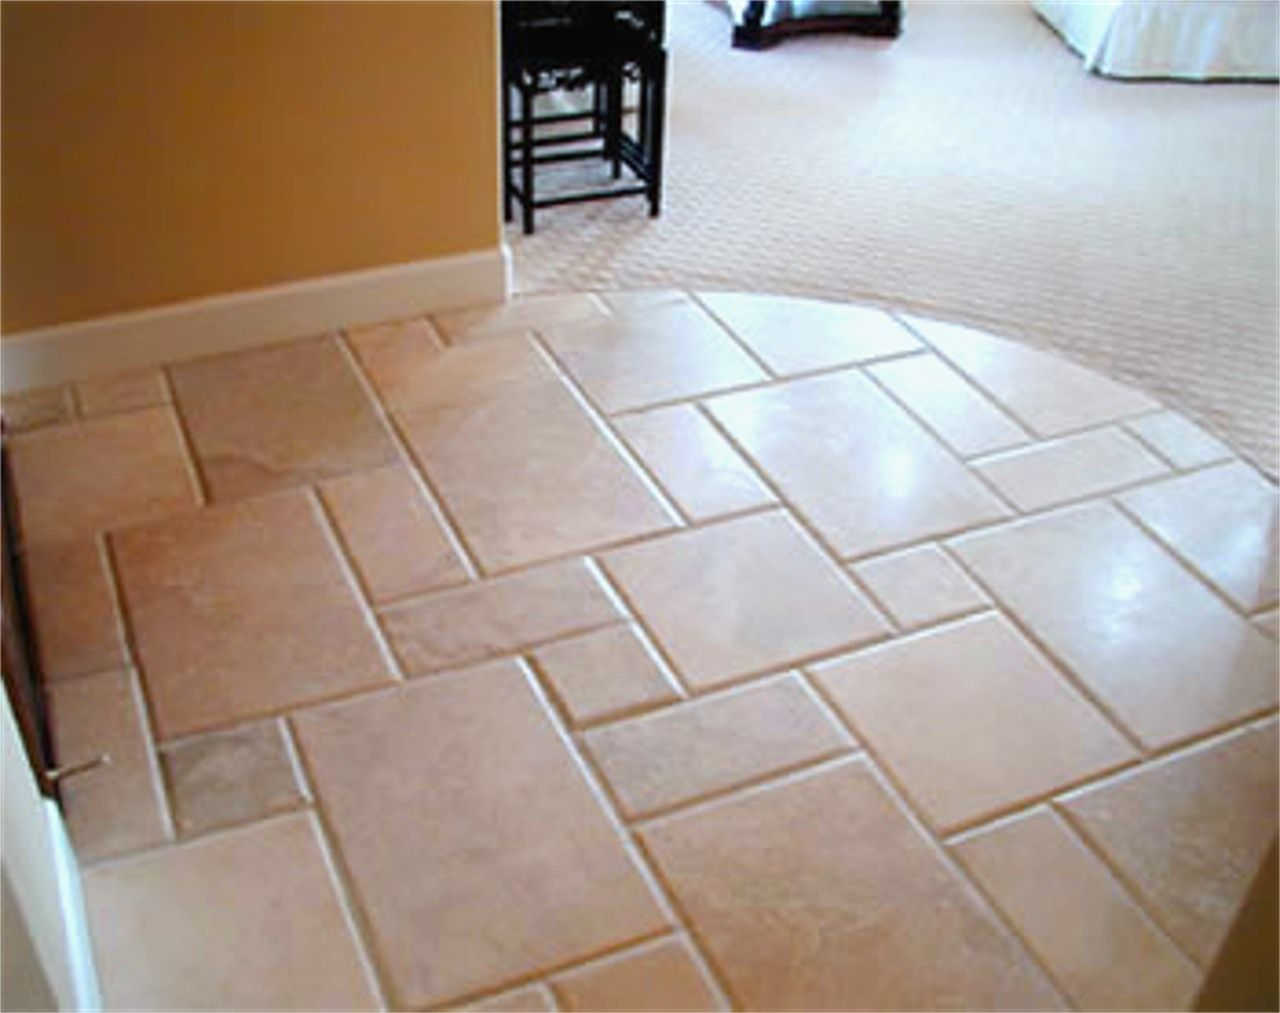 Porcelain tile ceramic porcelain tile flooring burbank ceramic tile floor patterns on with hd resolution pixels dailygadgetfo Gallery